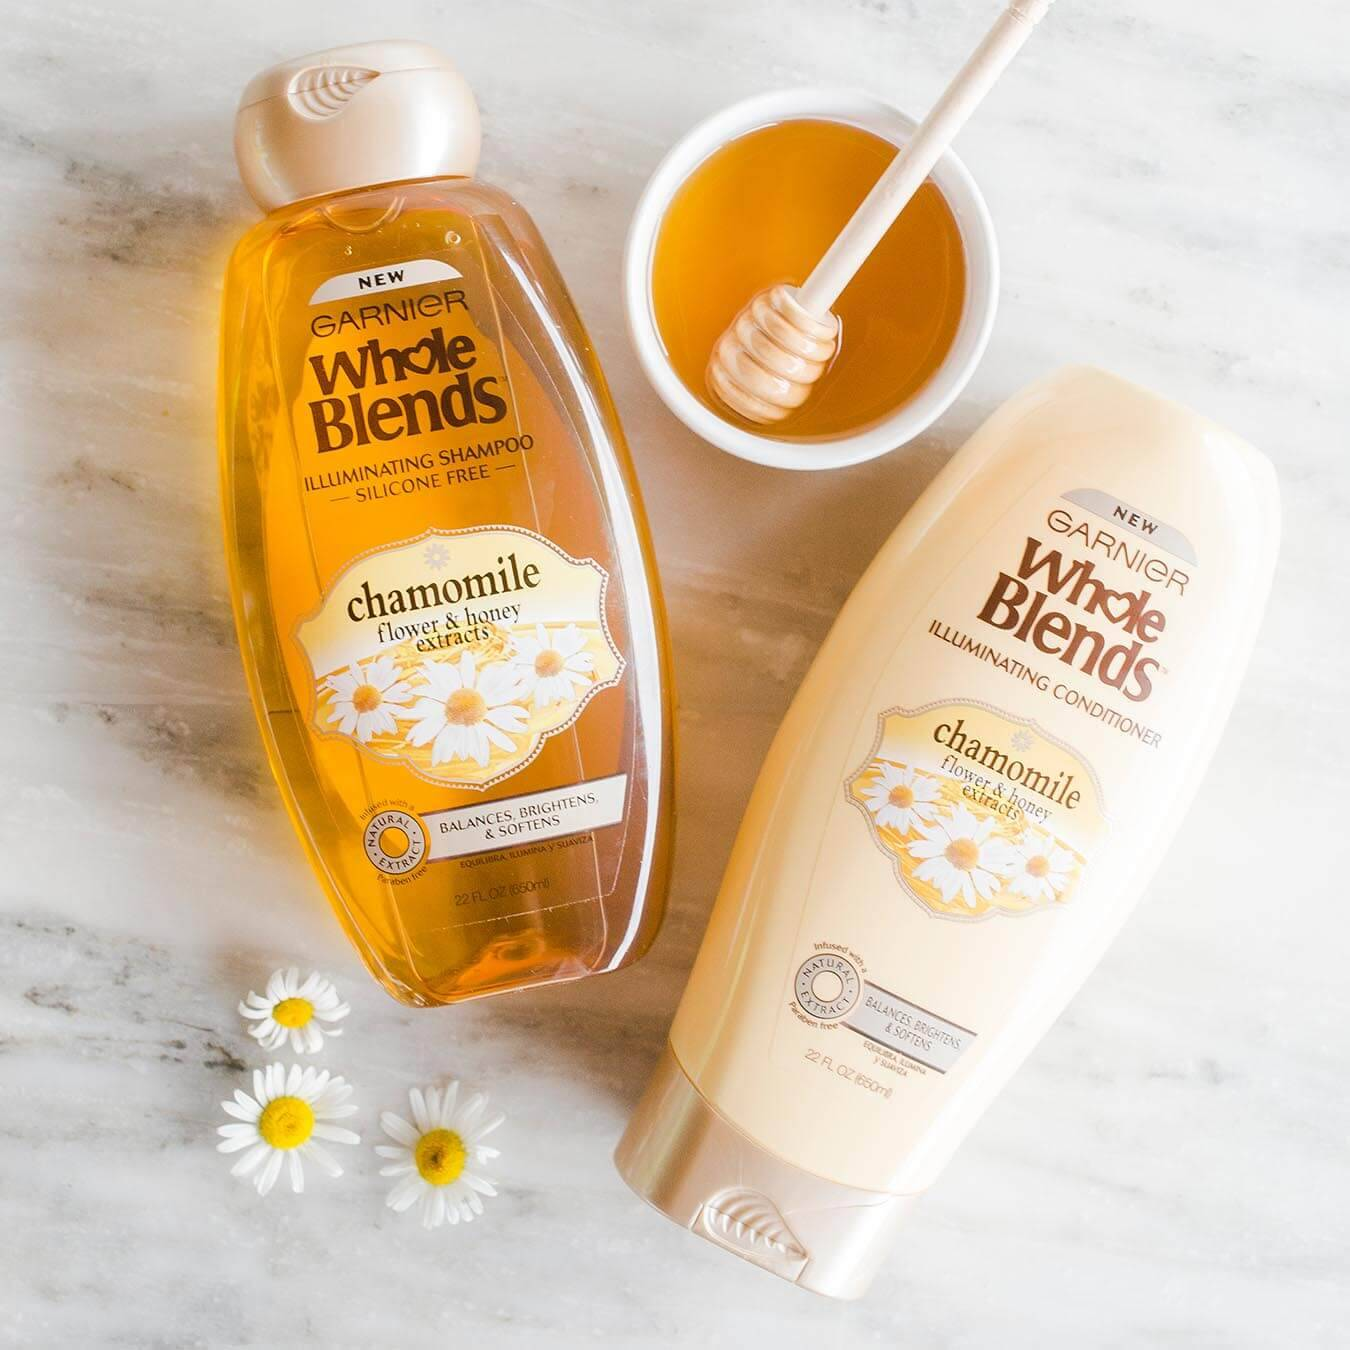 Whole Blends Chamomile Illuminating Shampoo with Flower and Honey Extracts and Chamomile Illuminating Conditioner with Flower and Honey Extracts on white marble with daisy blossoms and a ramekin of honey with a honey dipper.